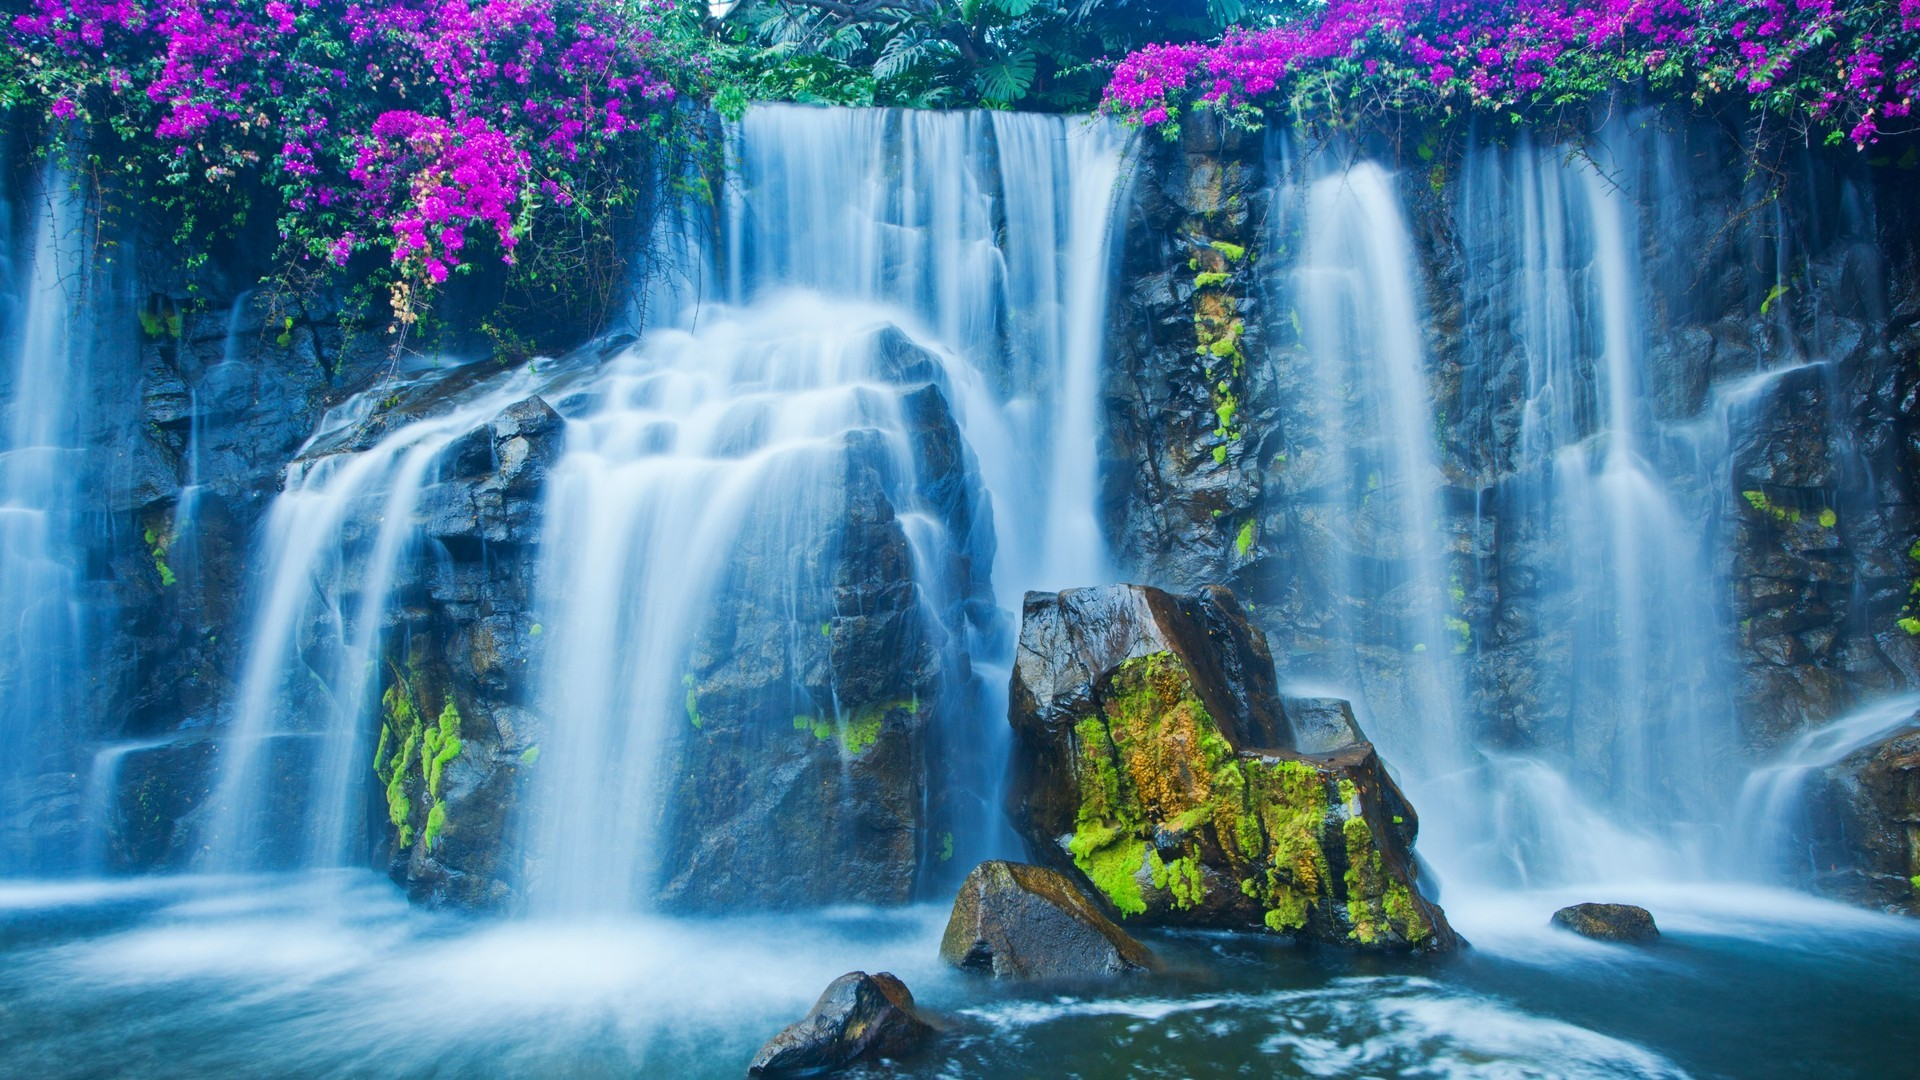 Desktop Wallpapers Waterfalls With Rainbow (34+ Images